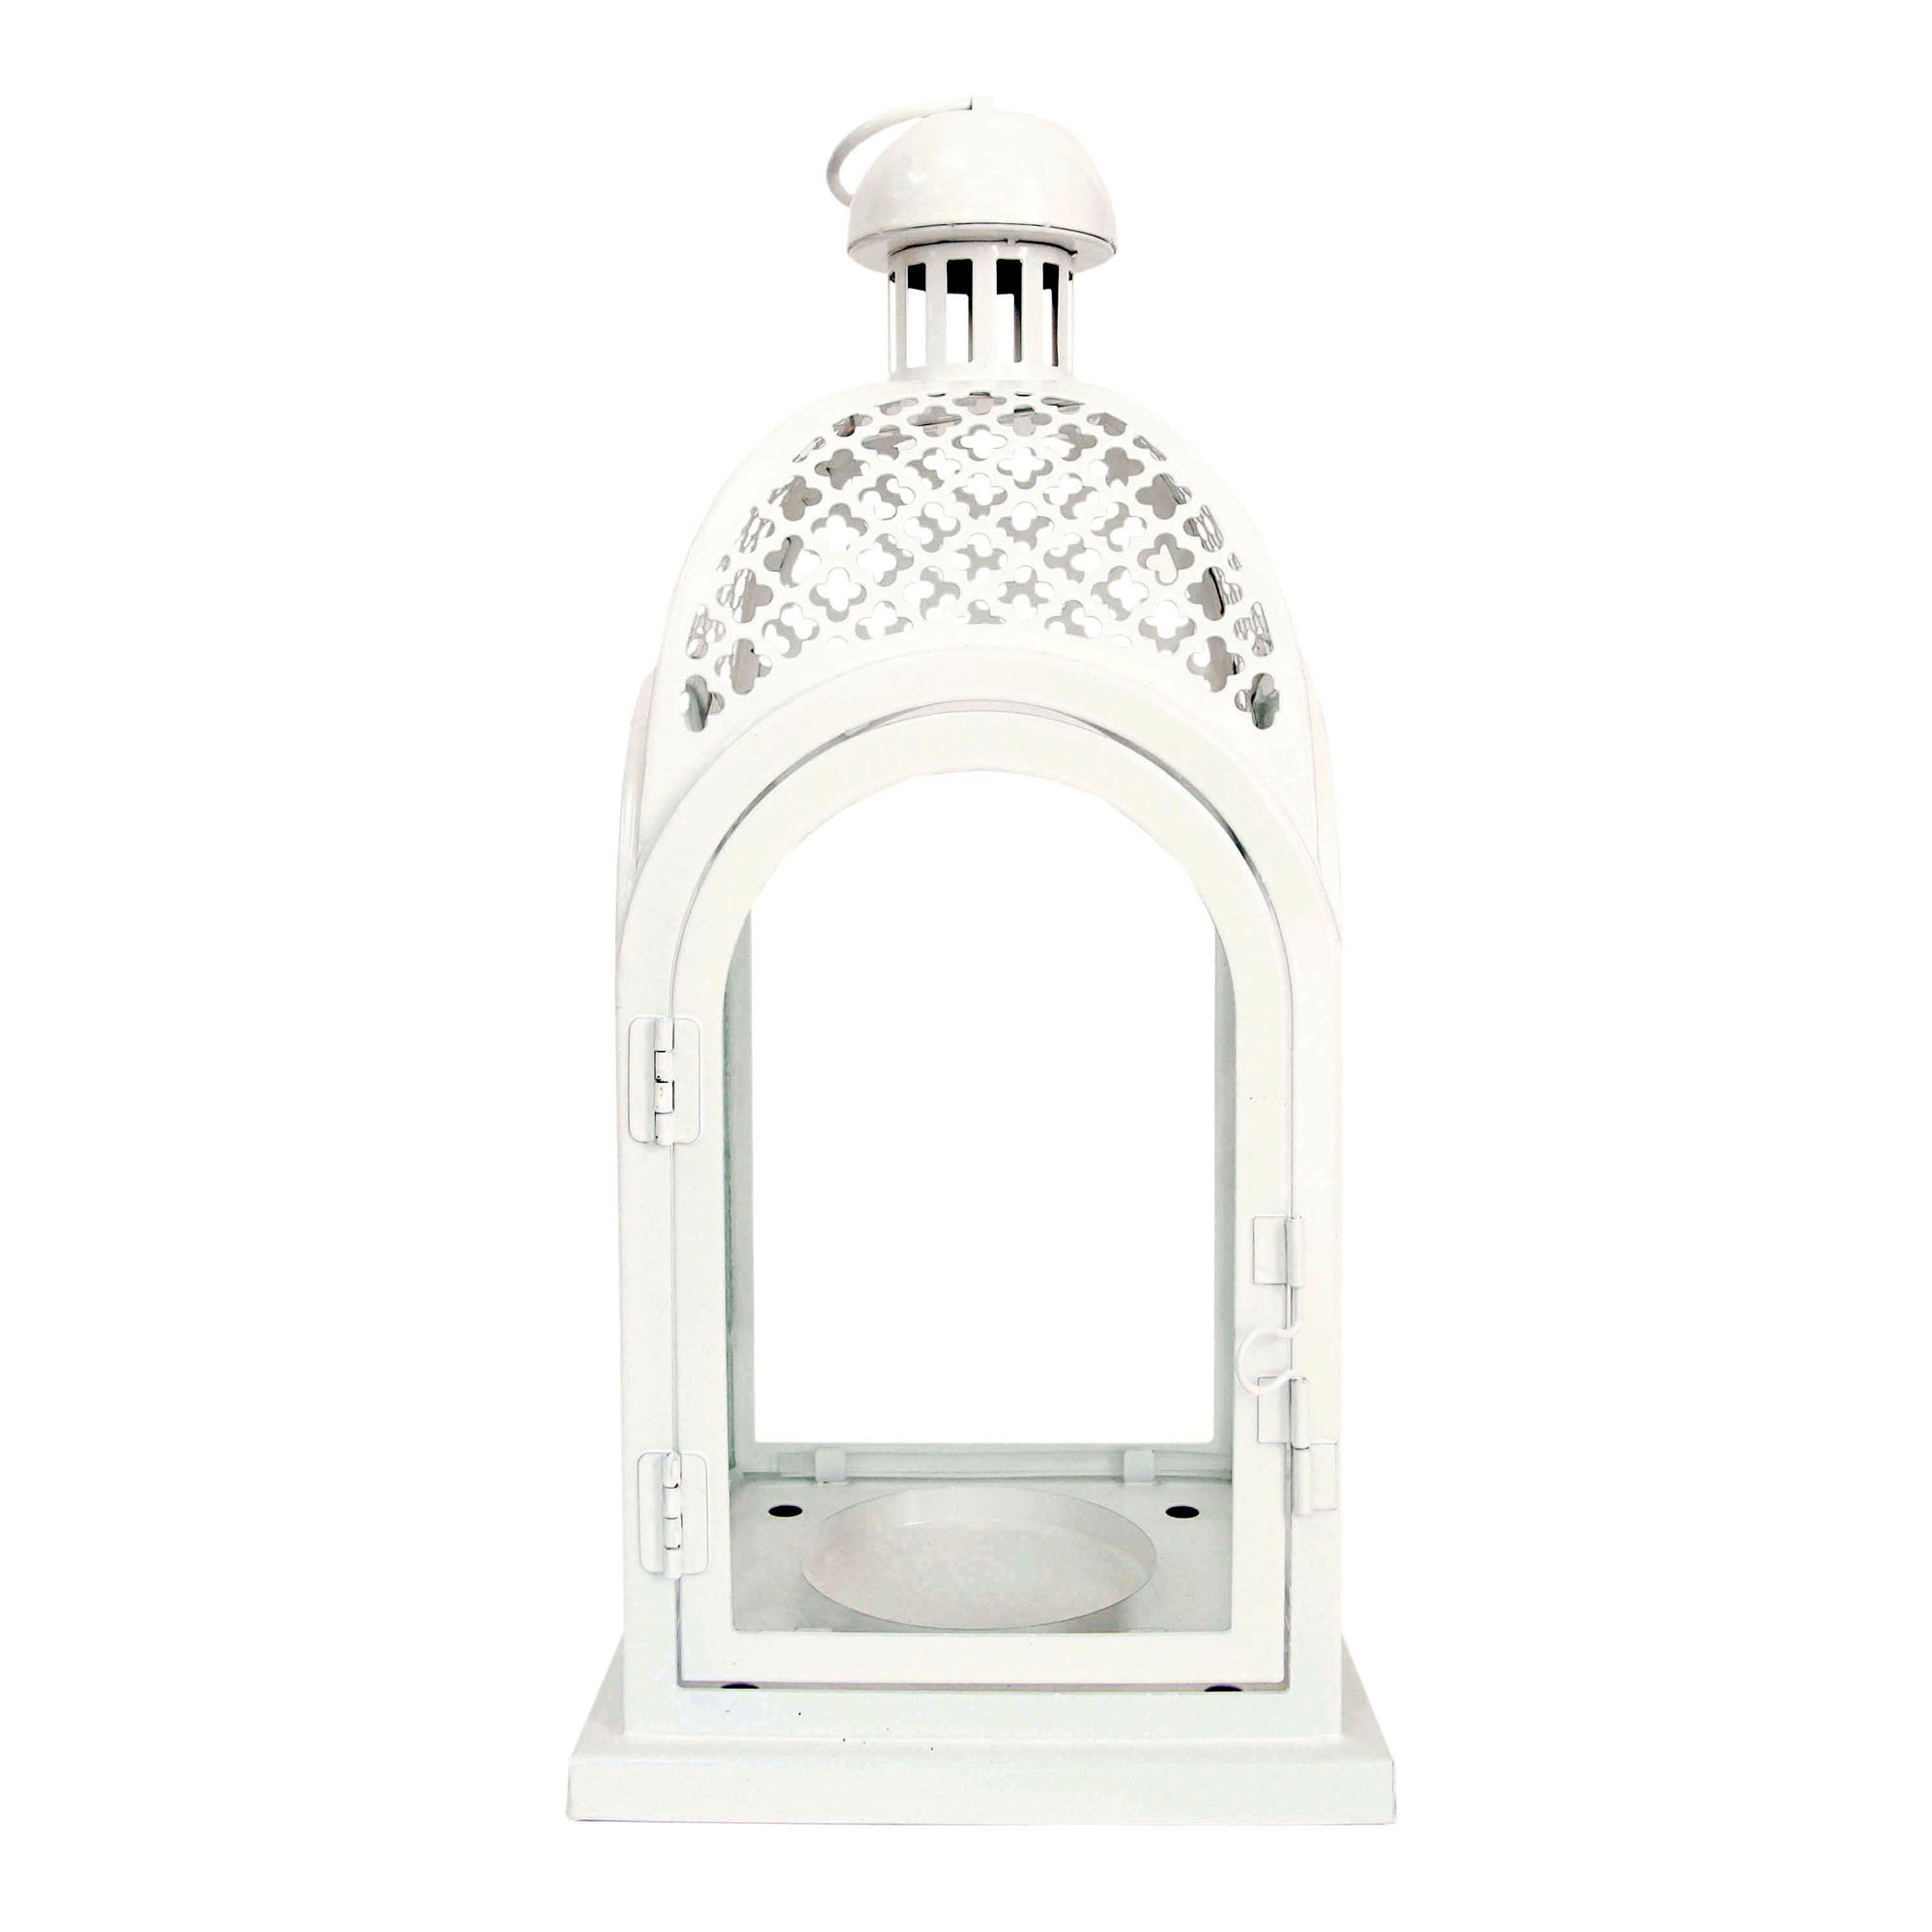 Click here to buy Better Homes & Gardens White Lantern by IMPORT-ZHONG NAM INDUSTRIAL (INTERNATIONAL) CO LTD.